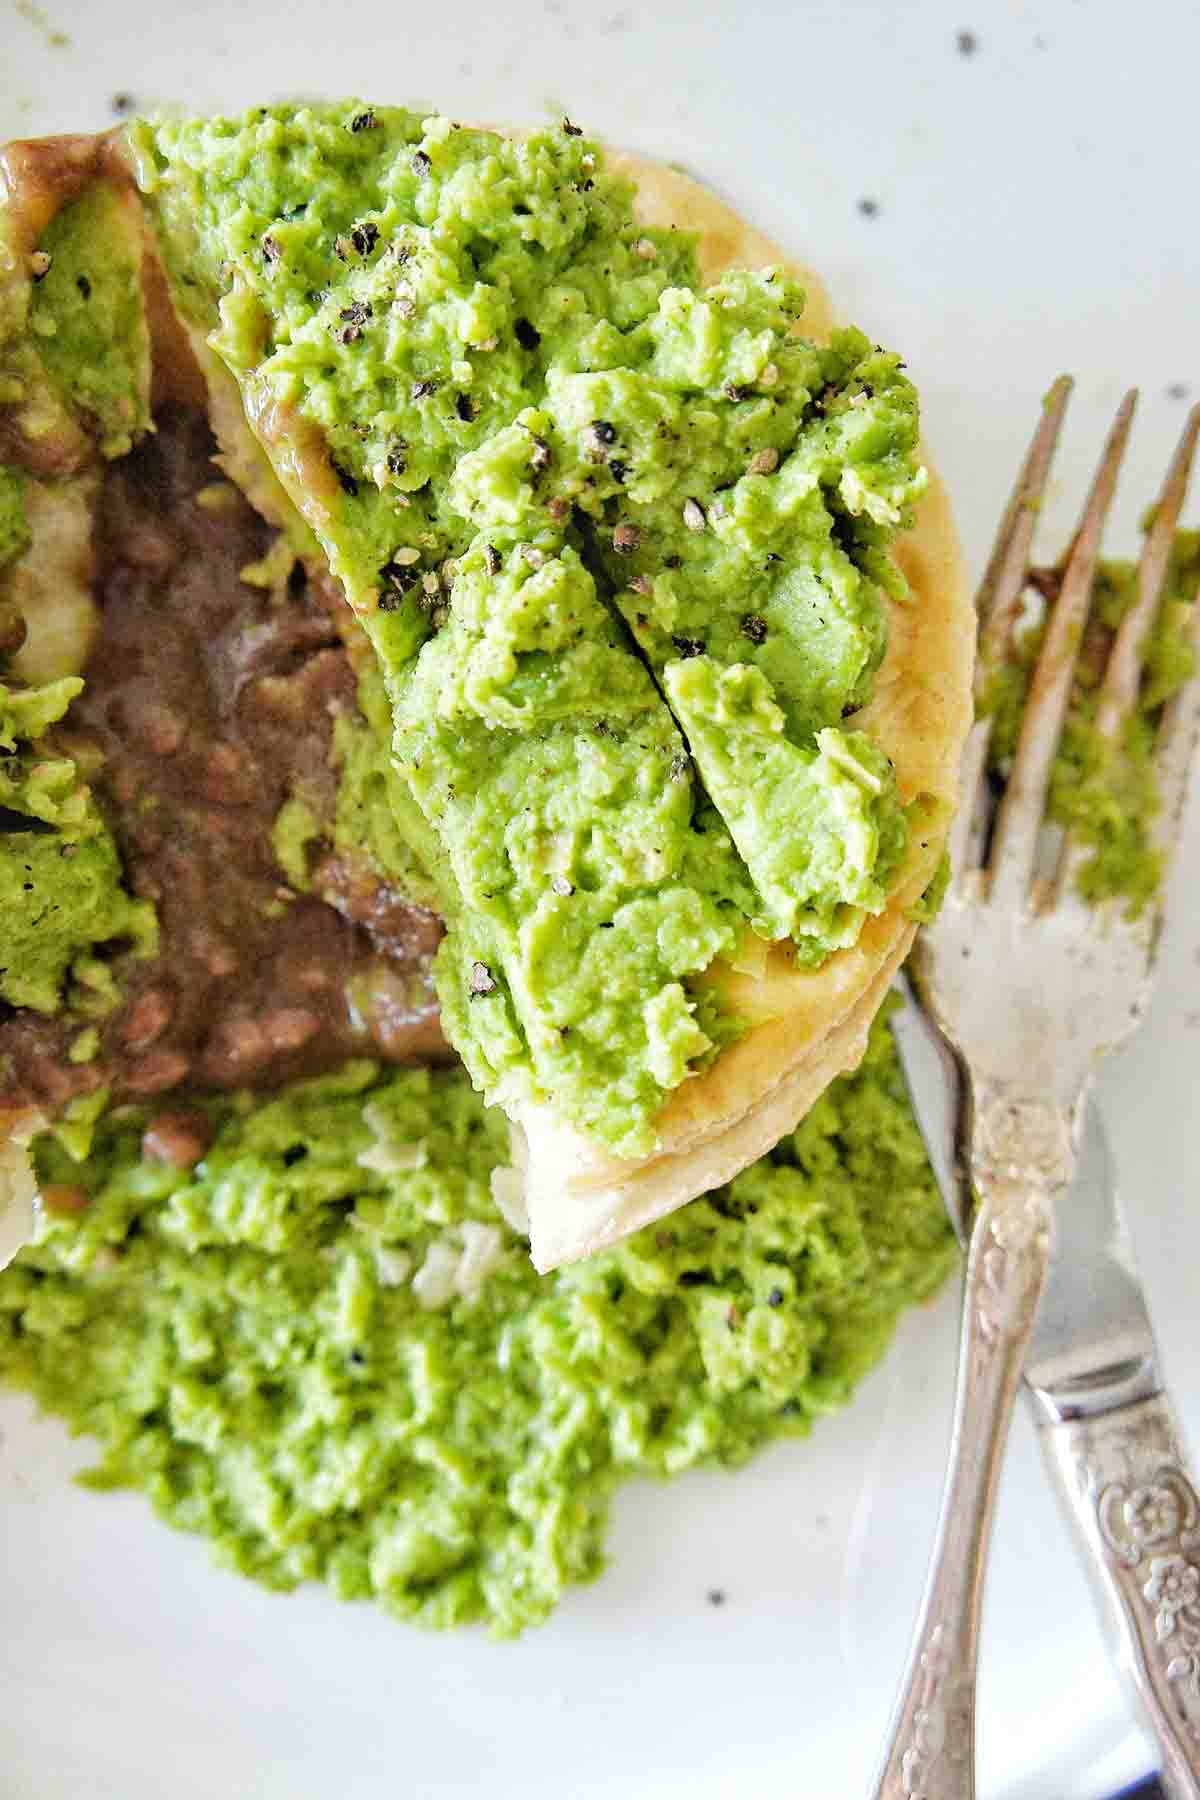 Mashed peas on top of a cut open meat pie on a white plate